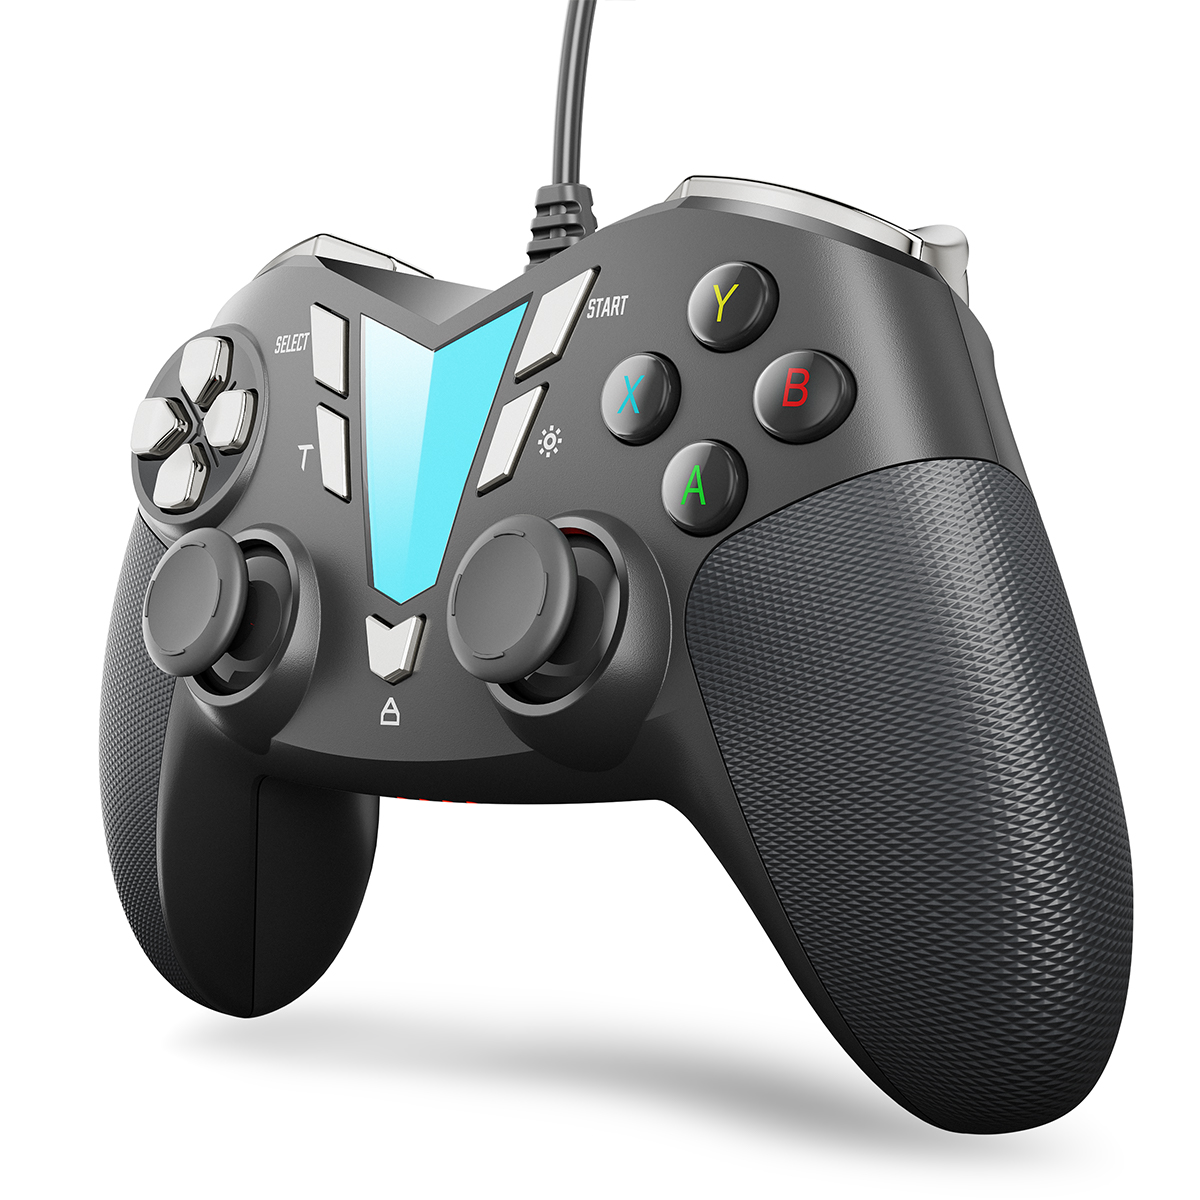 IFYOO ONE Pro Wired Gaming Controller – Silver&Black